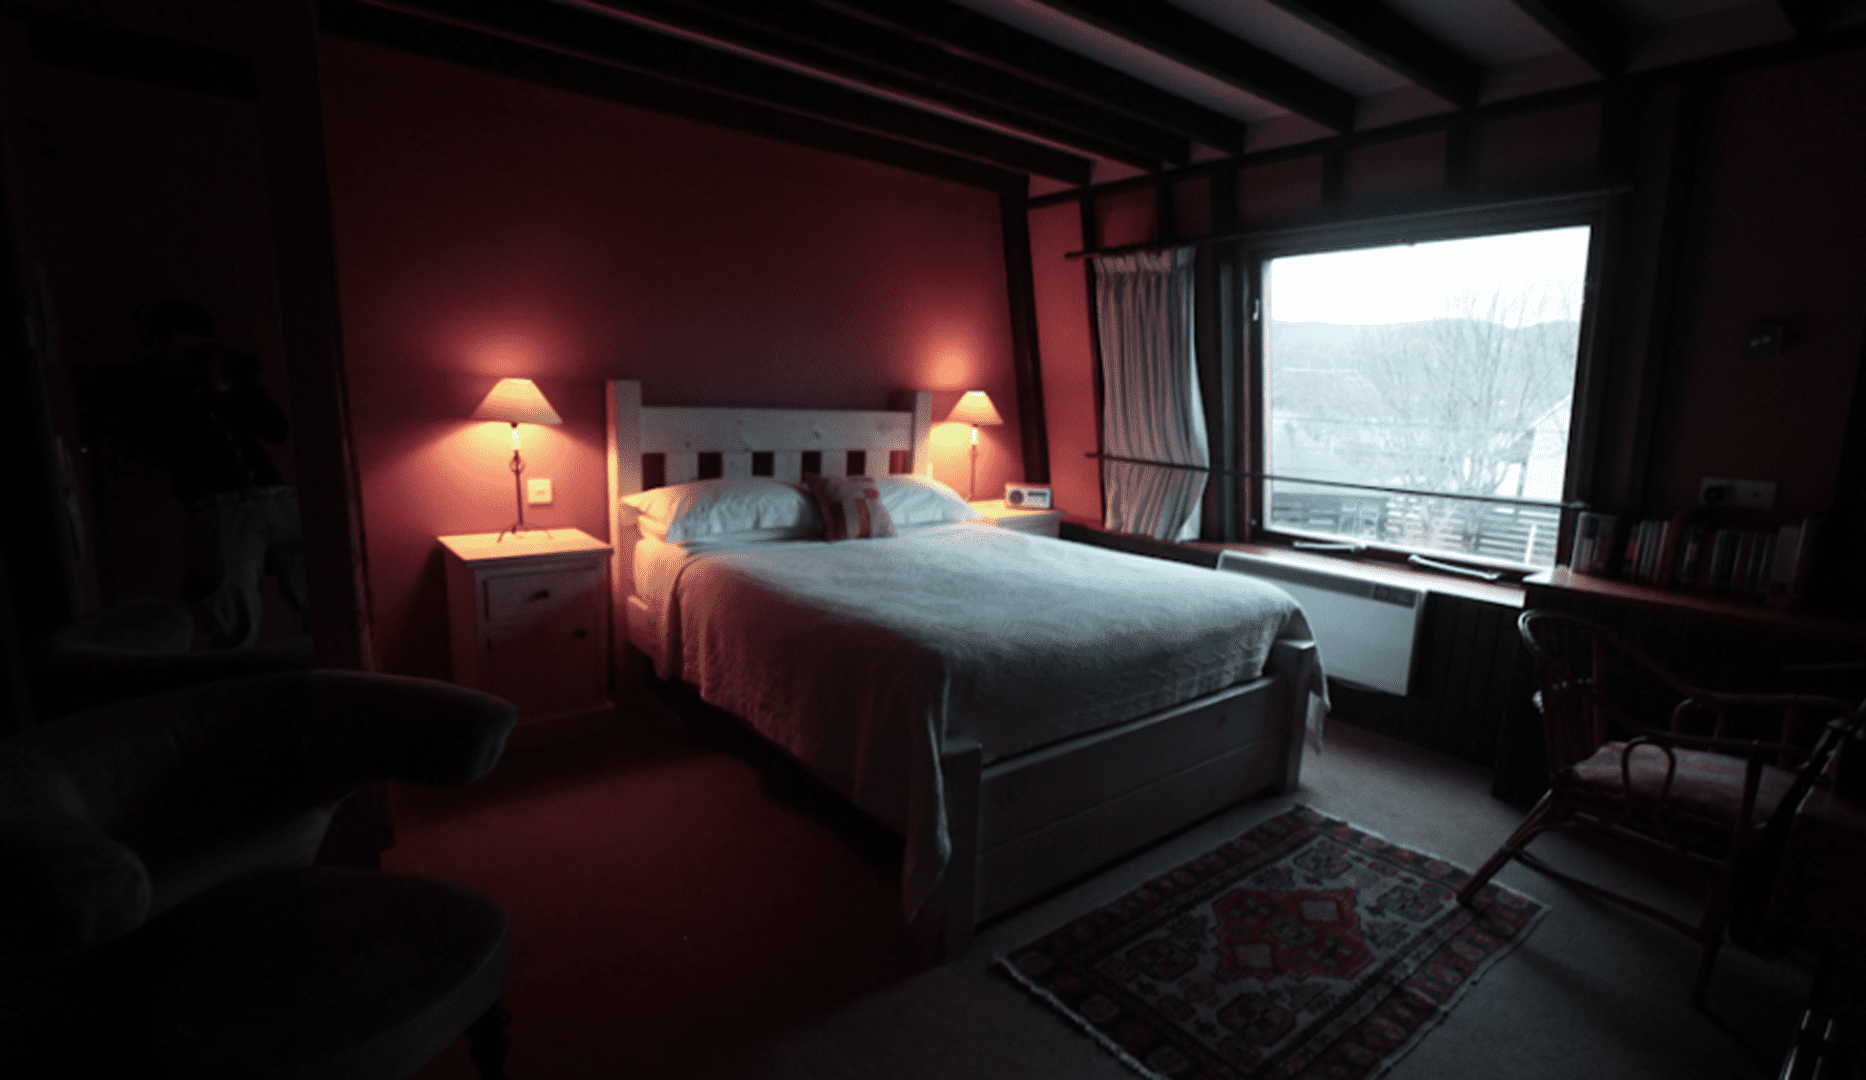 Bedroom at the Ceilidh place